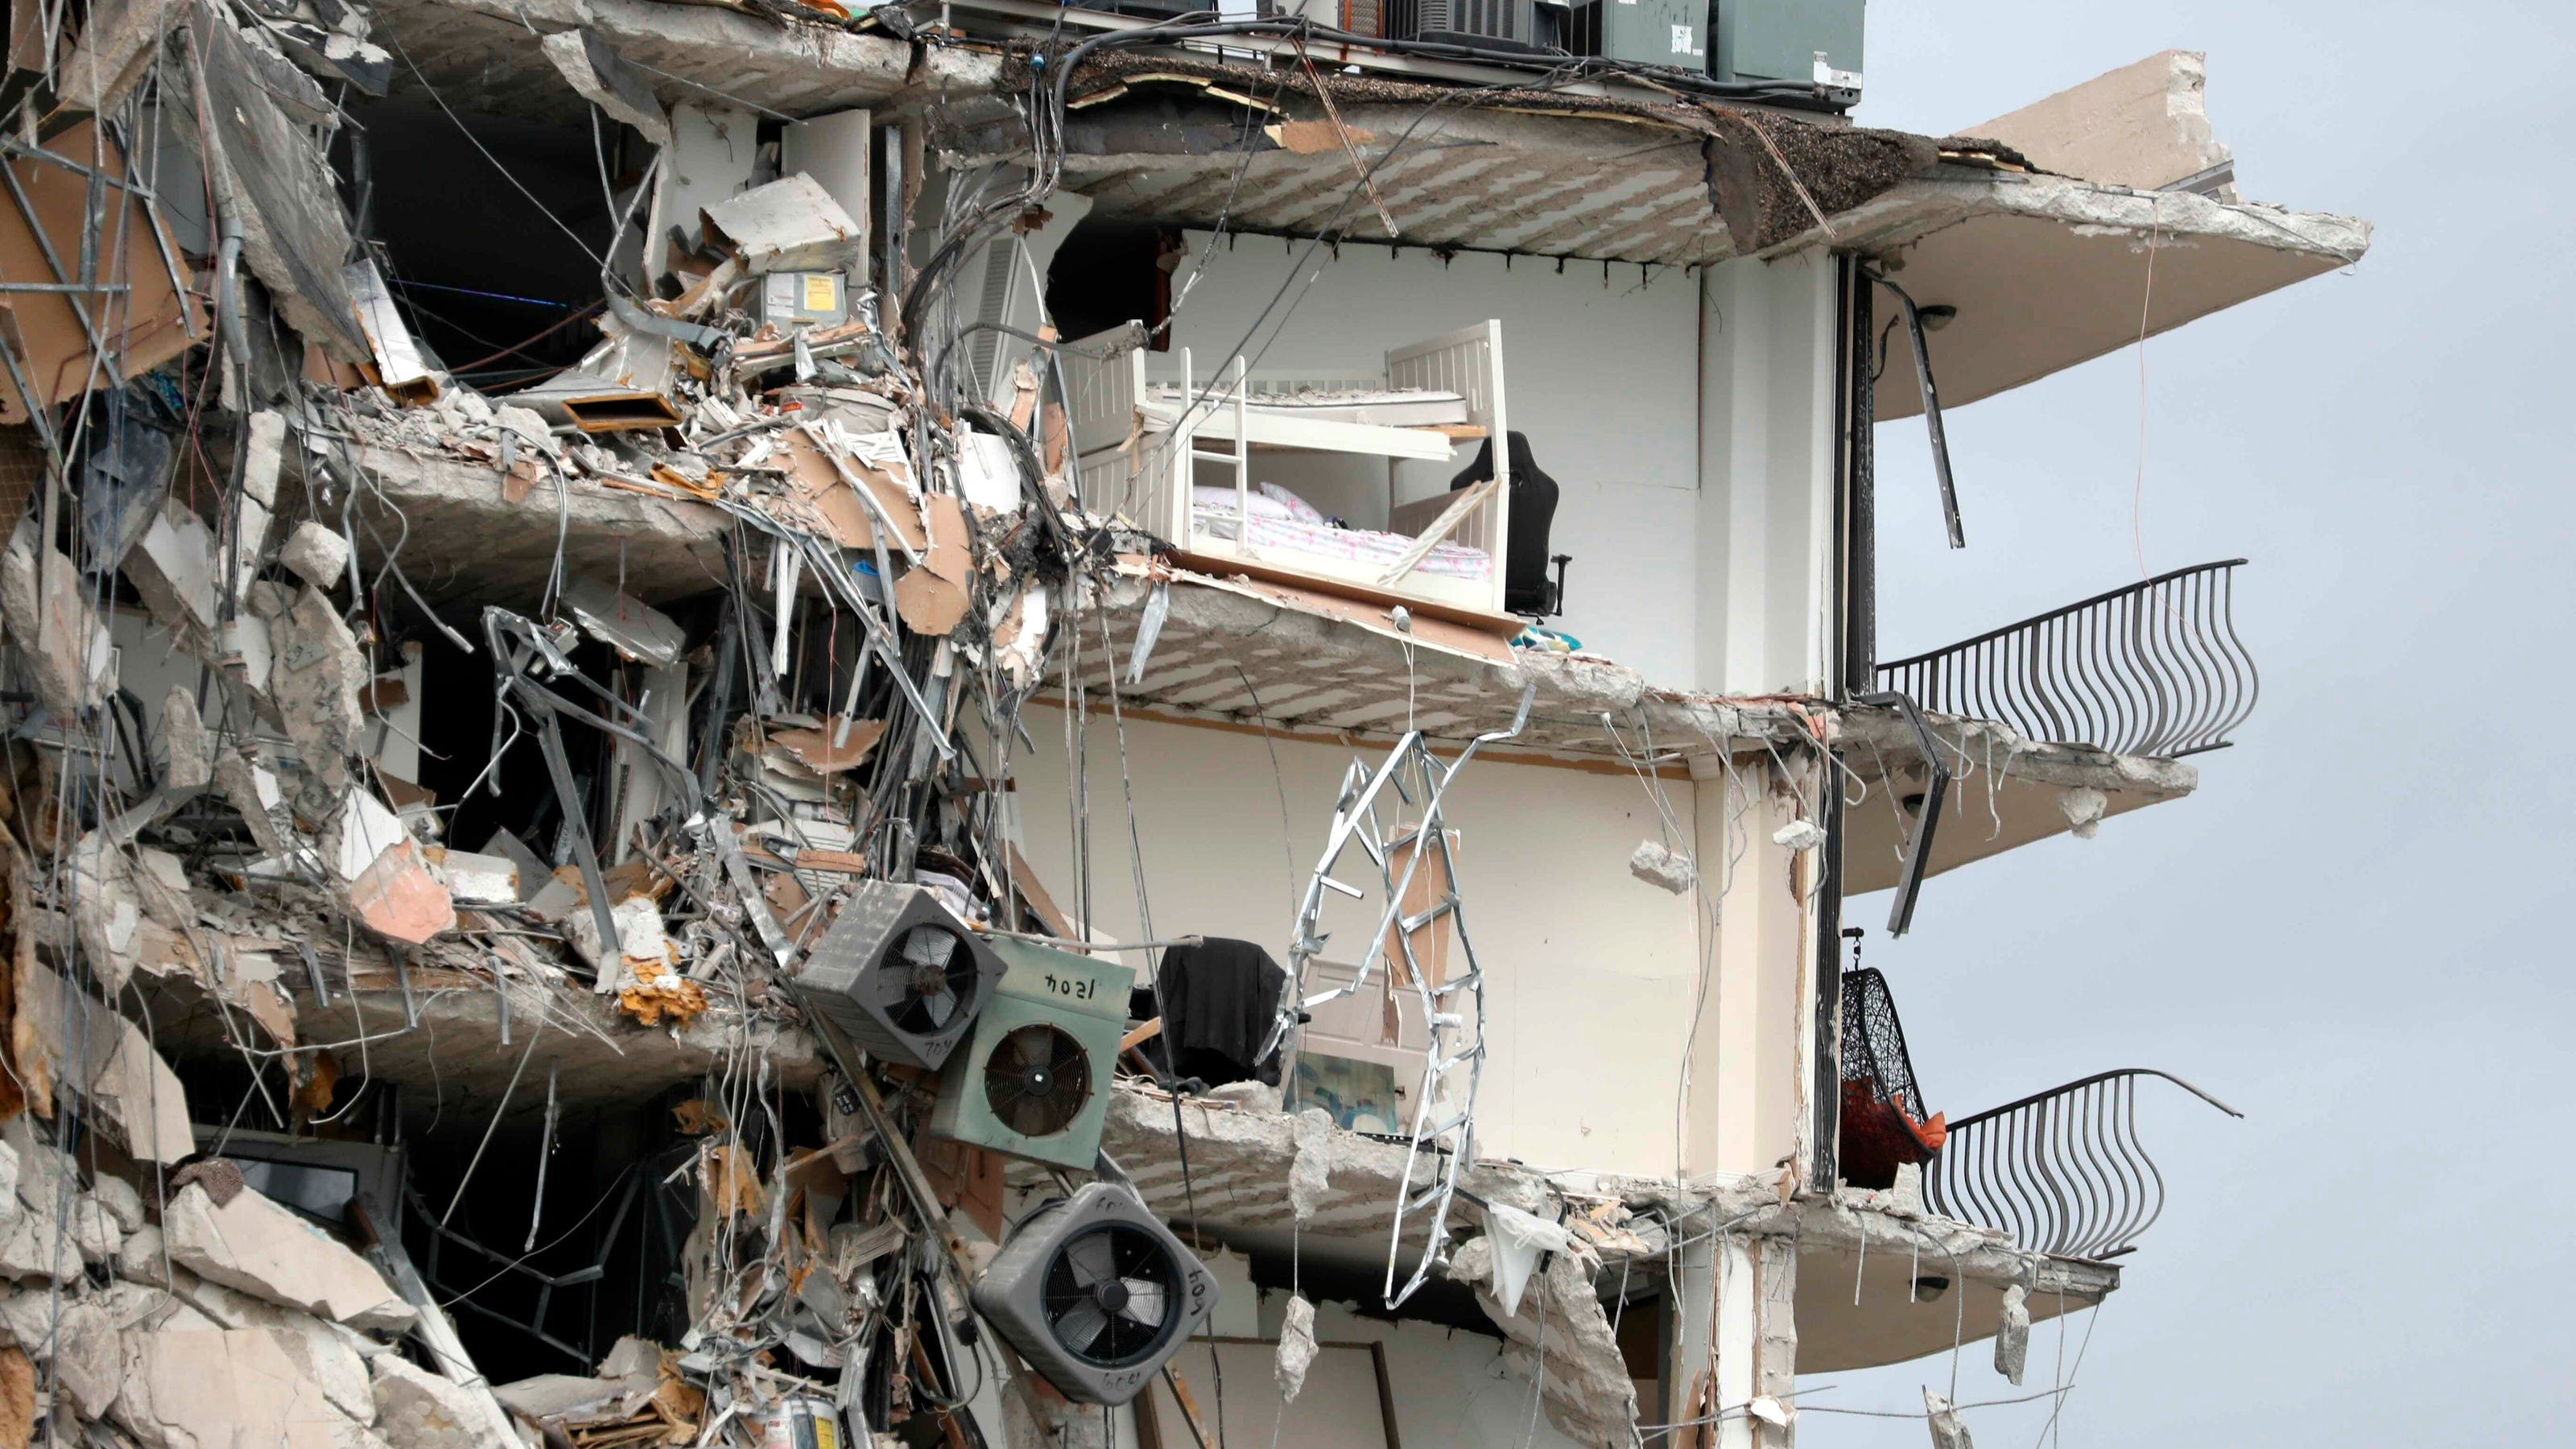 Miami condo collapse, Derek Chauvin sentencing, UFO report: 5 things to know Friday